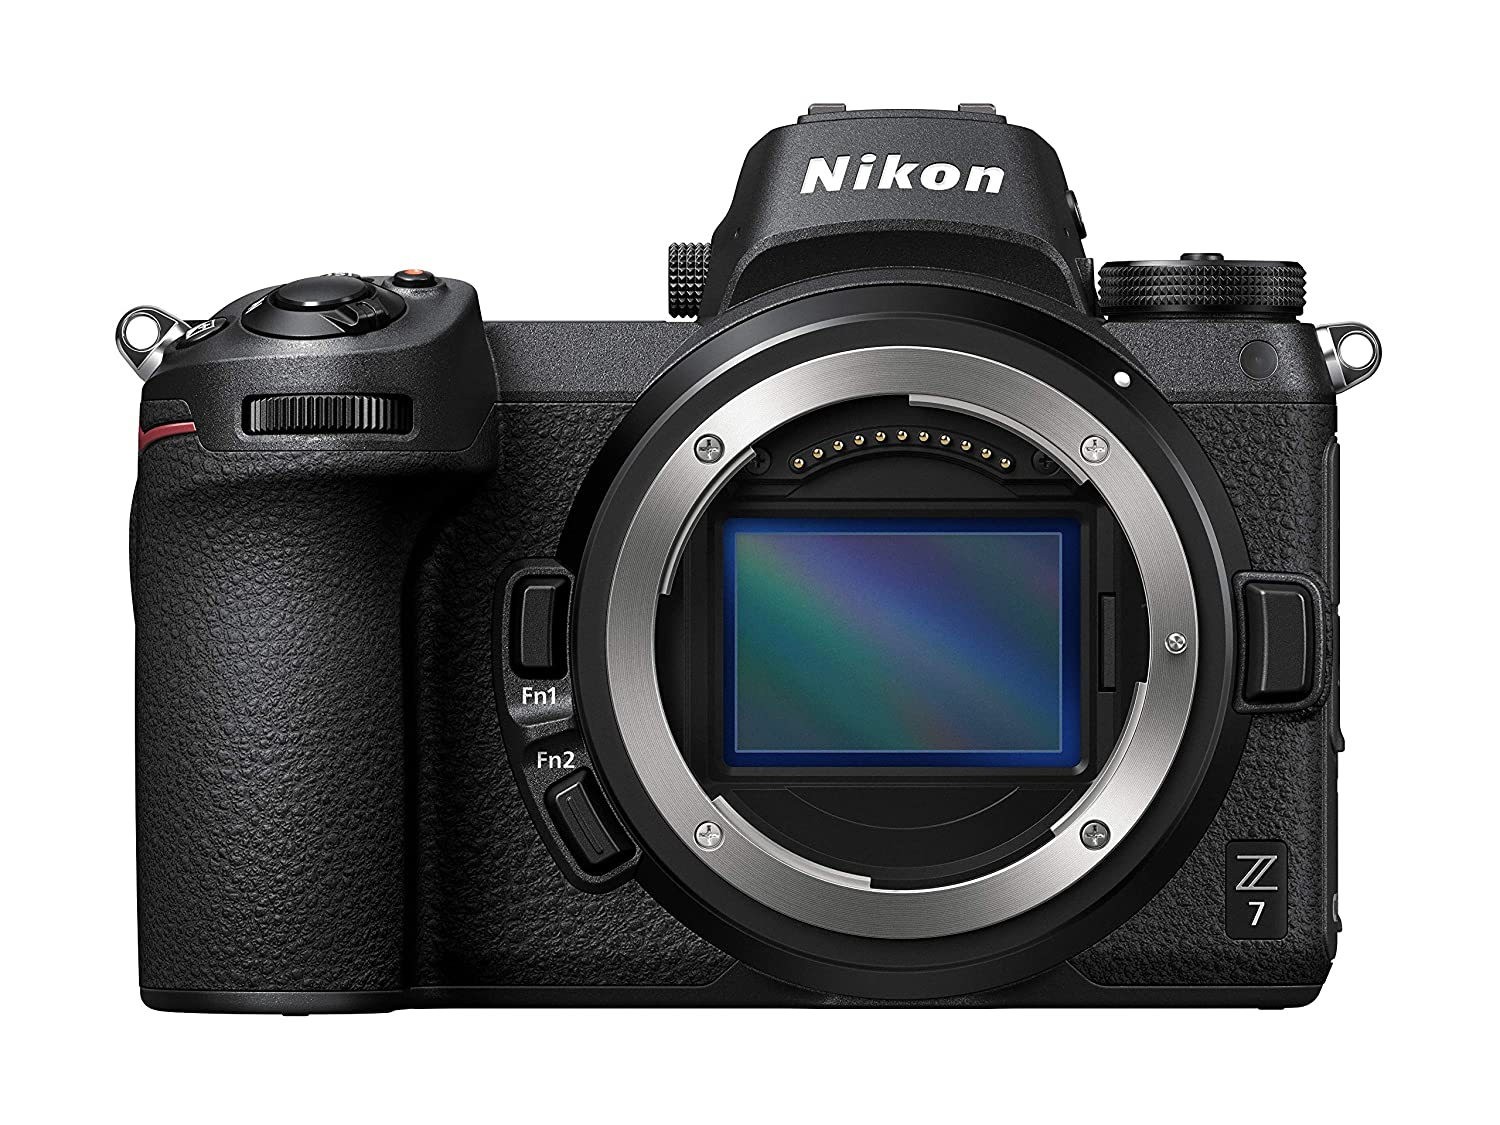 Nikon Z7 FX-Format Mirrorless Camera Body w/NIKKOR Z 24-70mm f/4 S Z7 with NIKKOR Z 24-70mm f/4s